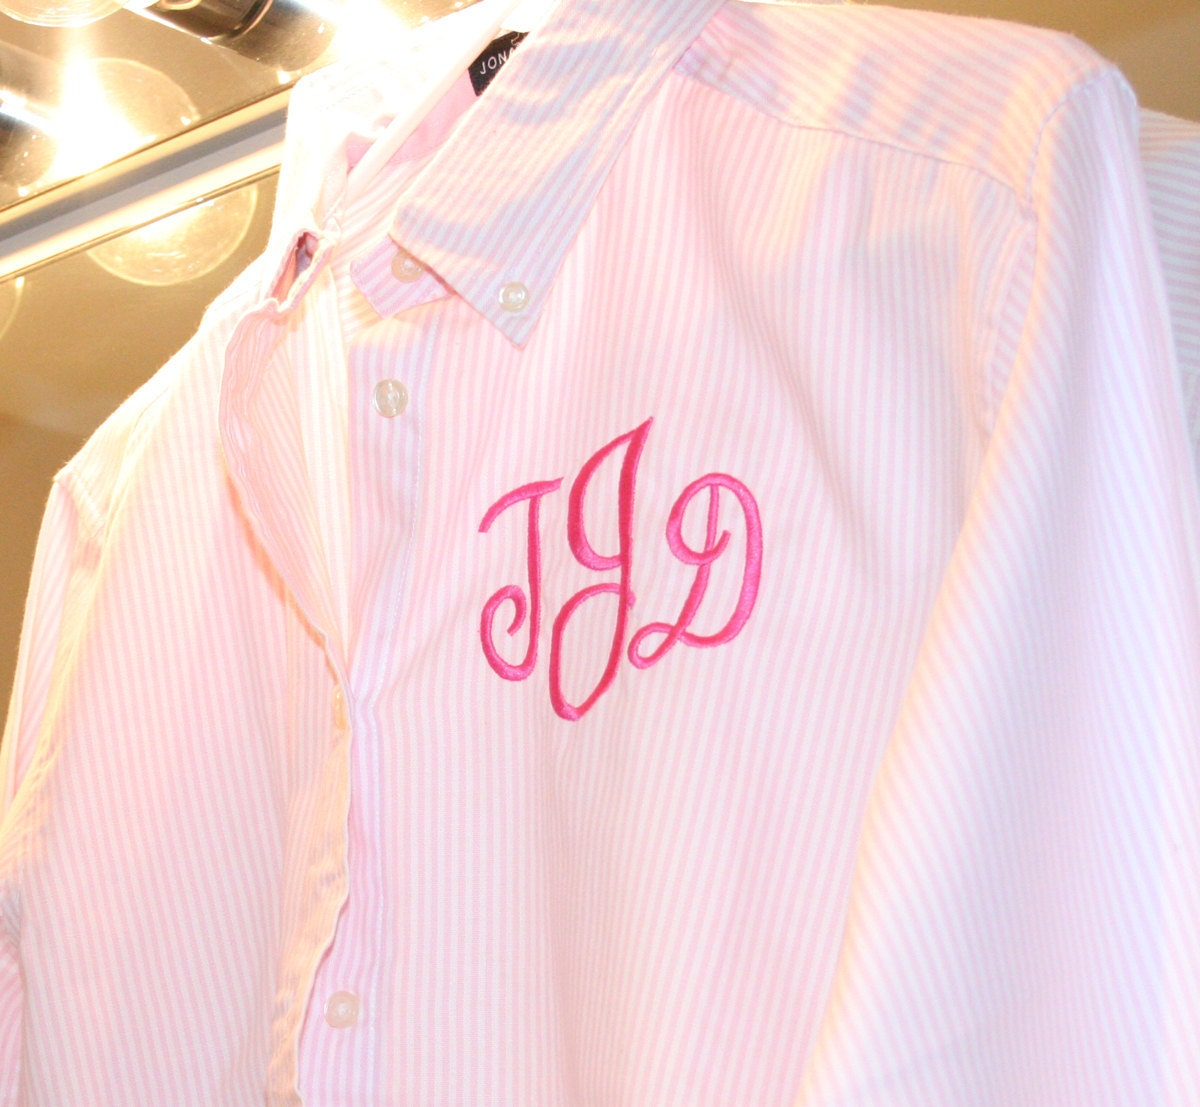 Oversized Mens Shirt Monogram Pink Stripe Oxford Bridesmaids Button Down